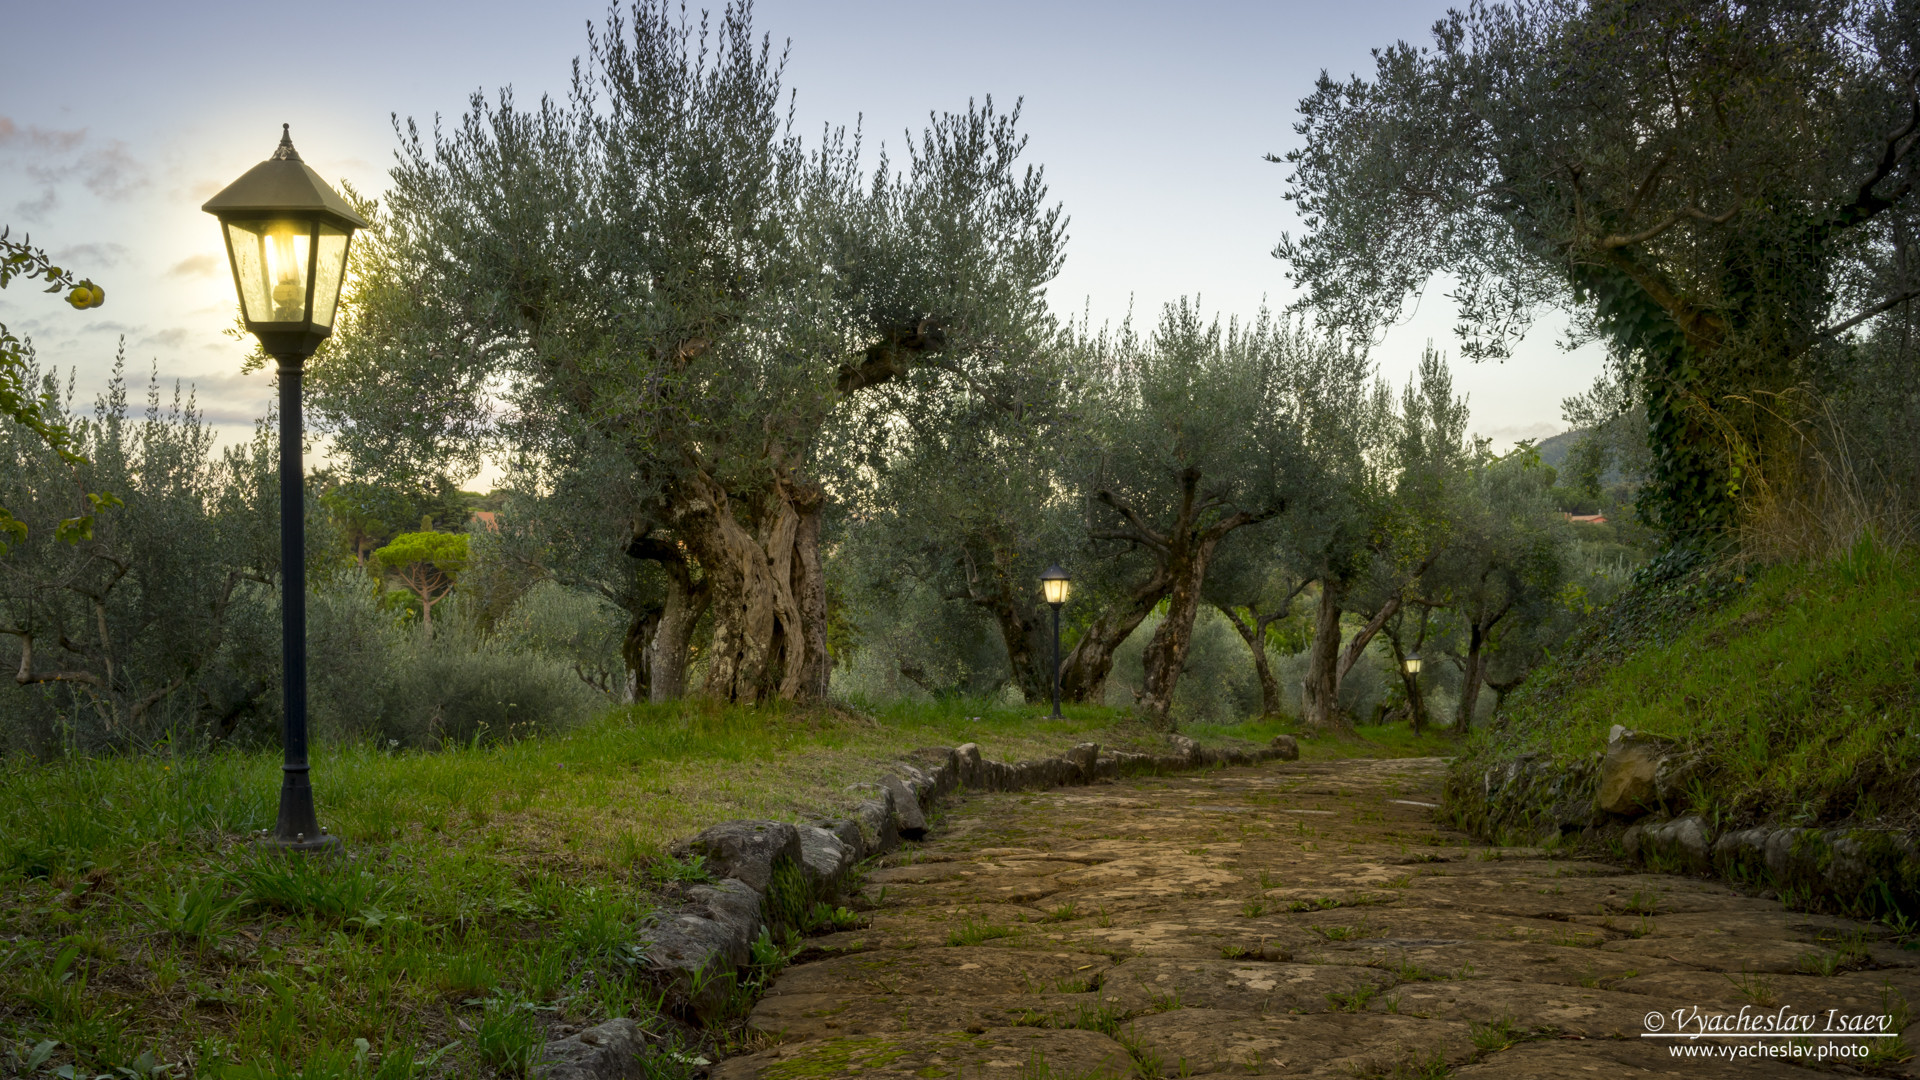 An ancient road in the olive garden by Vaycheslav Isaev. Frascati, Italy, 2015.